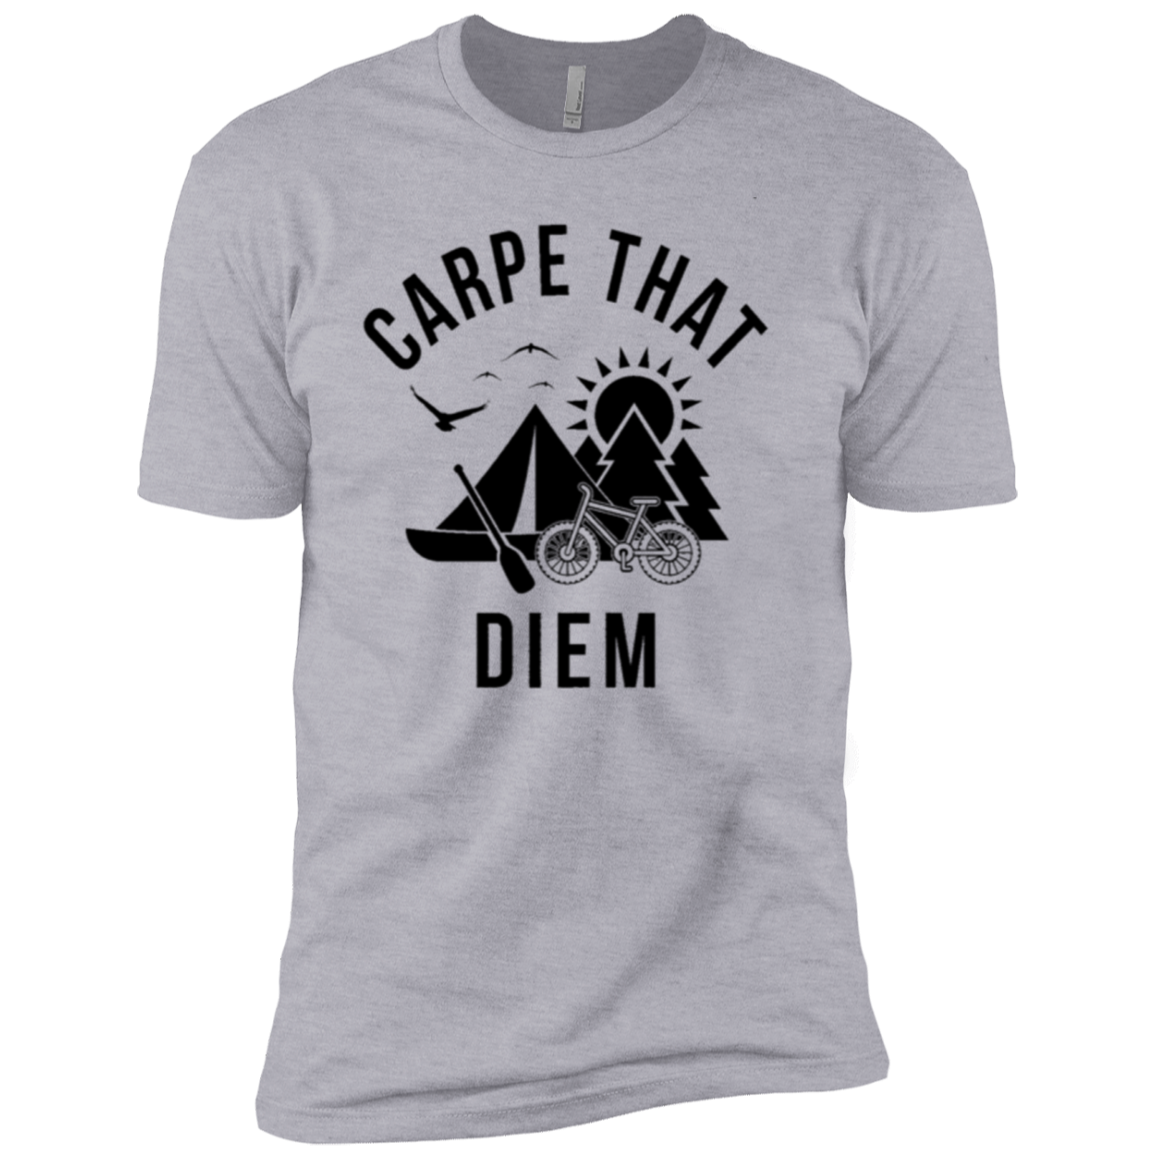 Carpe that Diem Men's Classic Tee